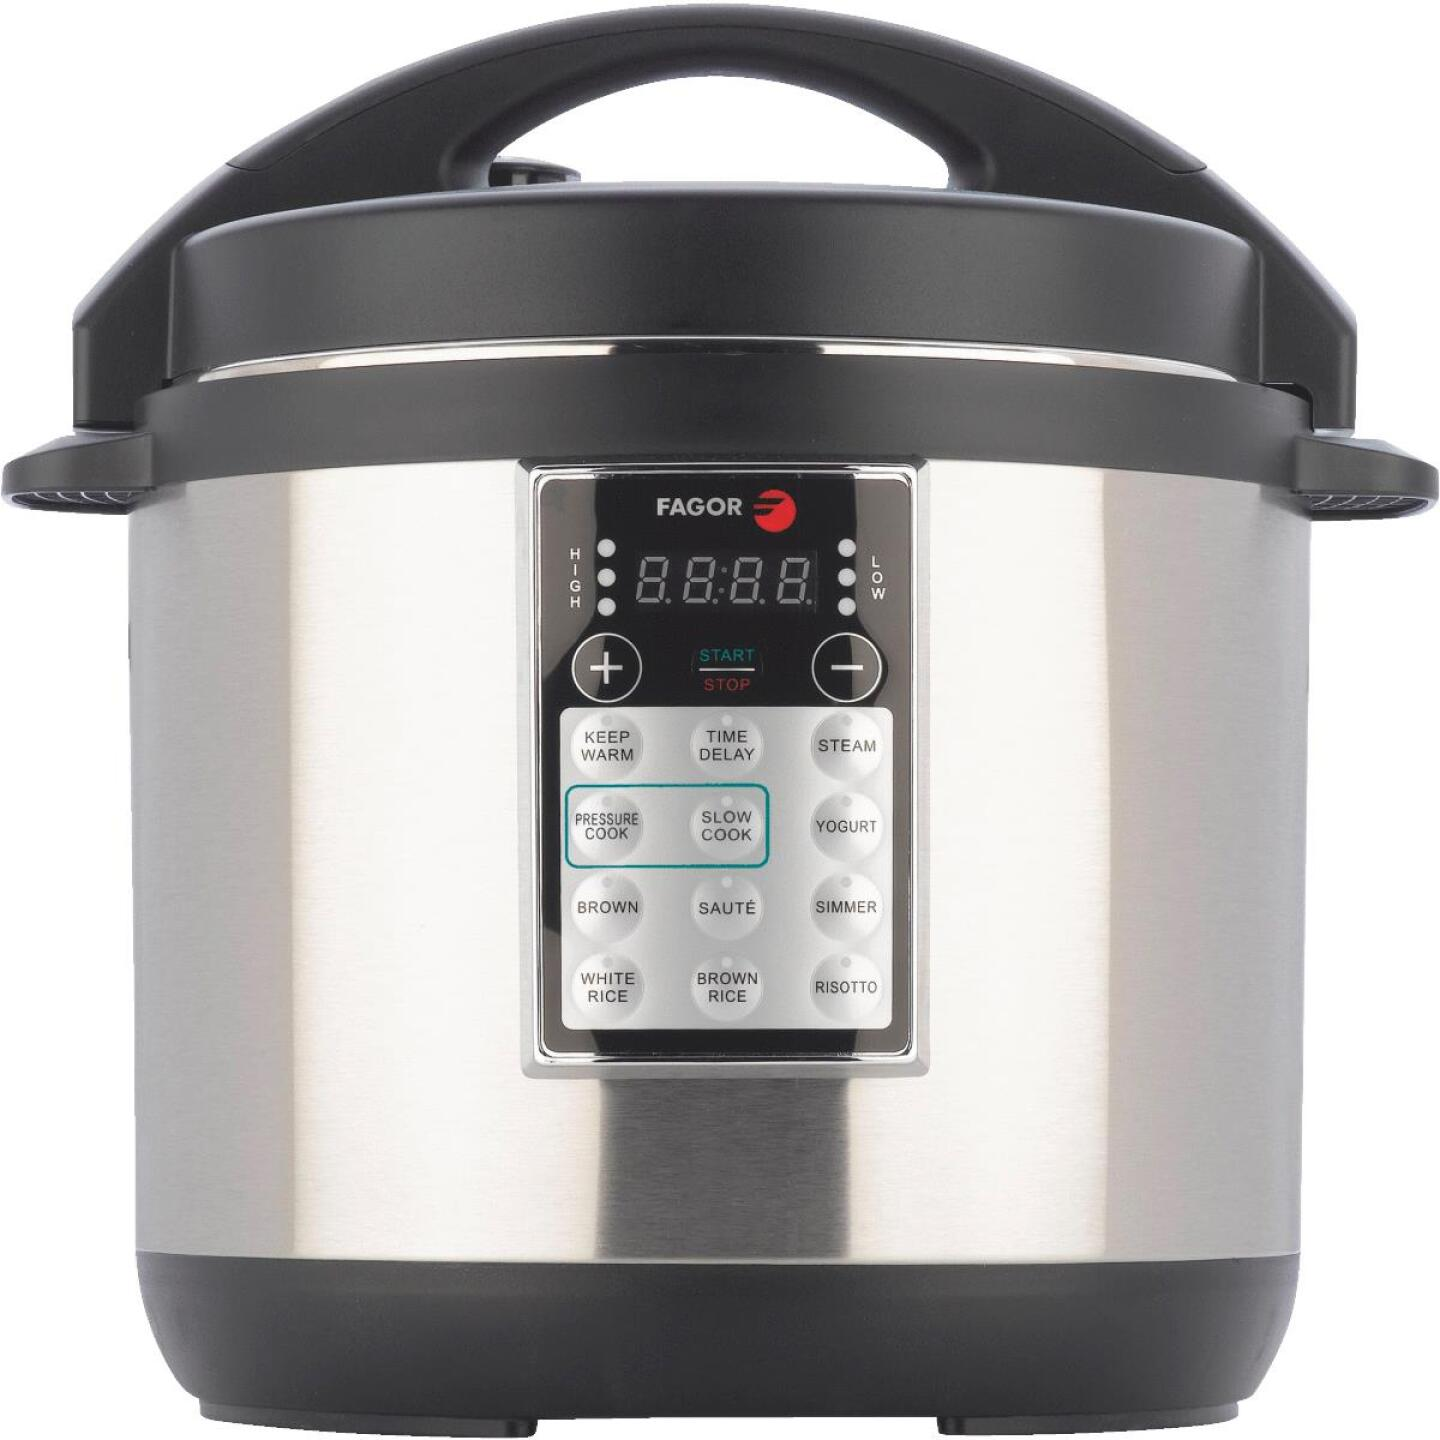 Fagor Lux 6 Qt. All-In-One Multi-Cooker Image 1